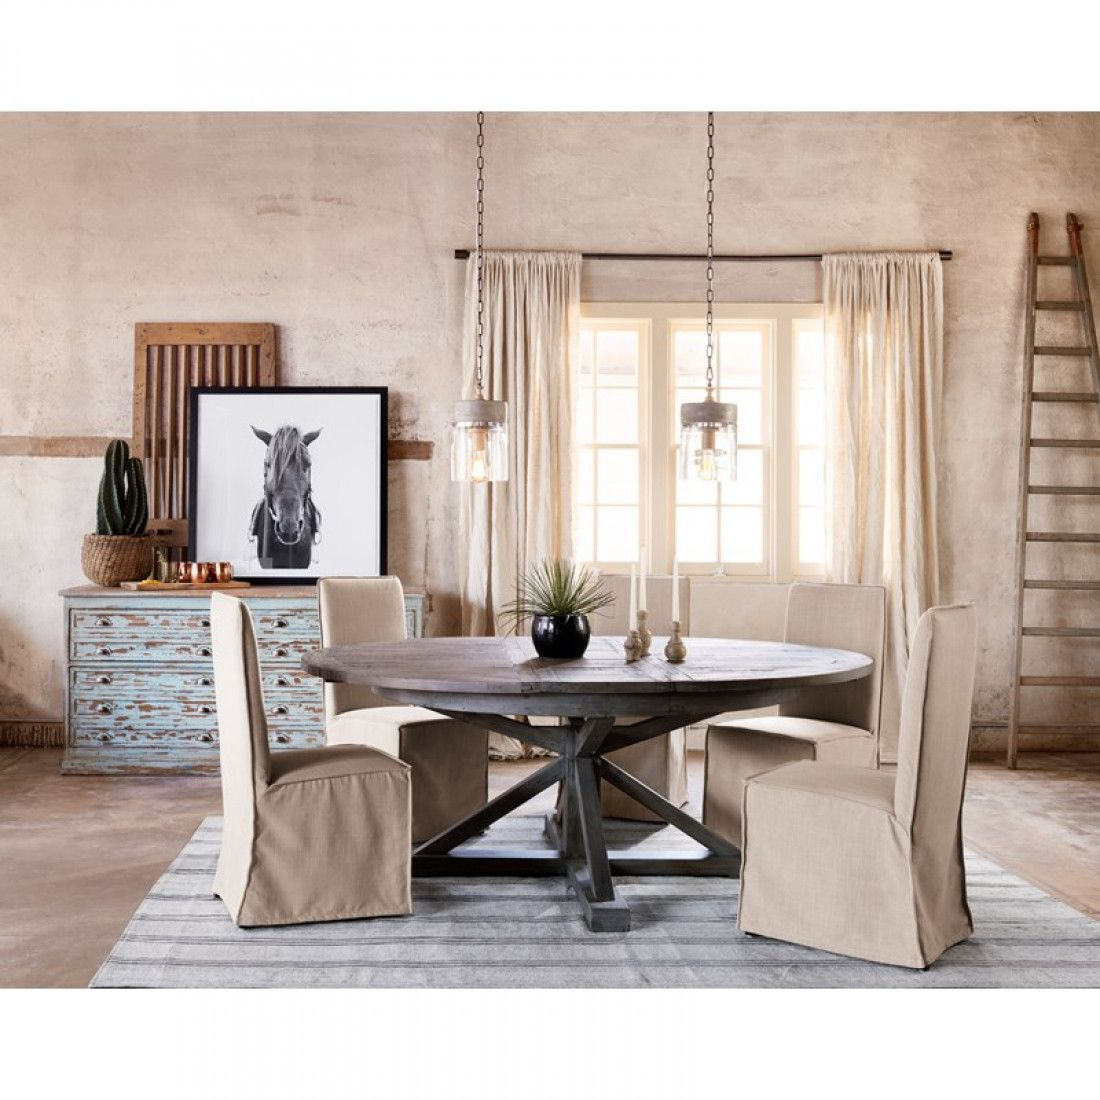 """Cintra Extension Dining Table: 63 79"""" Black Olive Throughout 2017 Black Olive Hart Reclaimed Pedestal Extending Dining Tables (View 7 of 25)"""